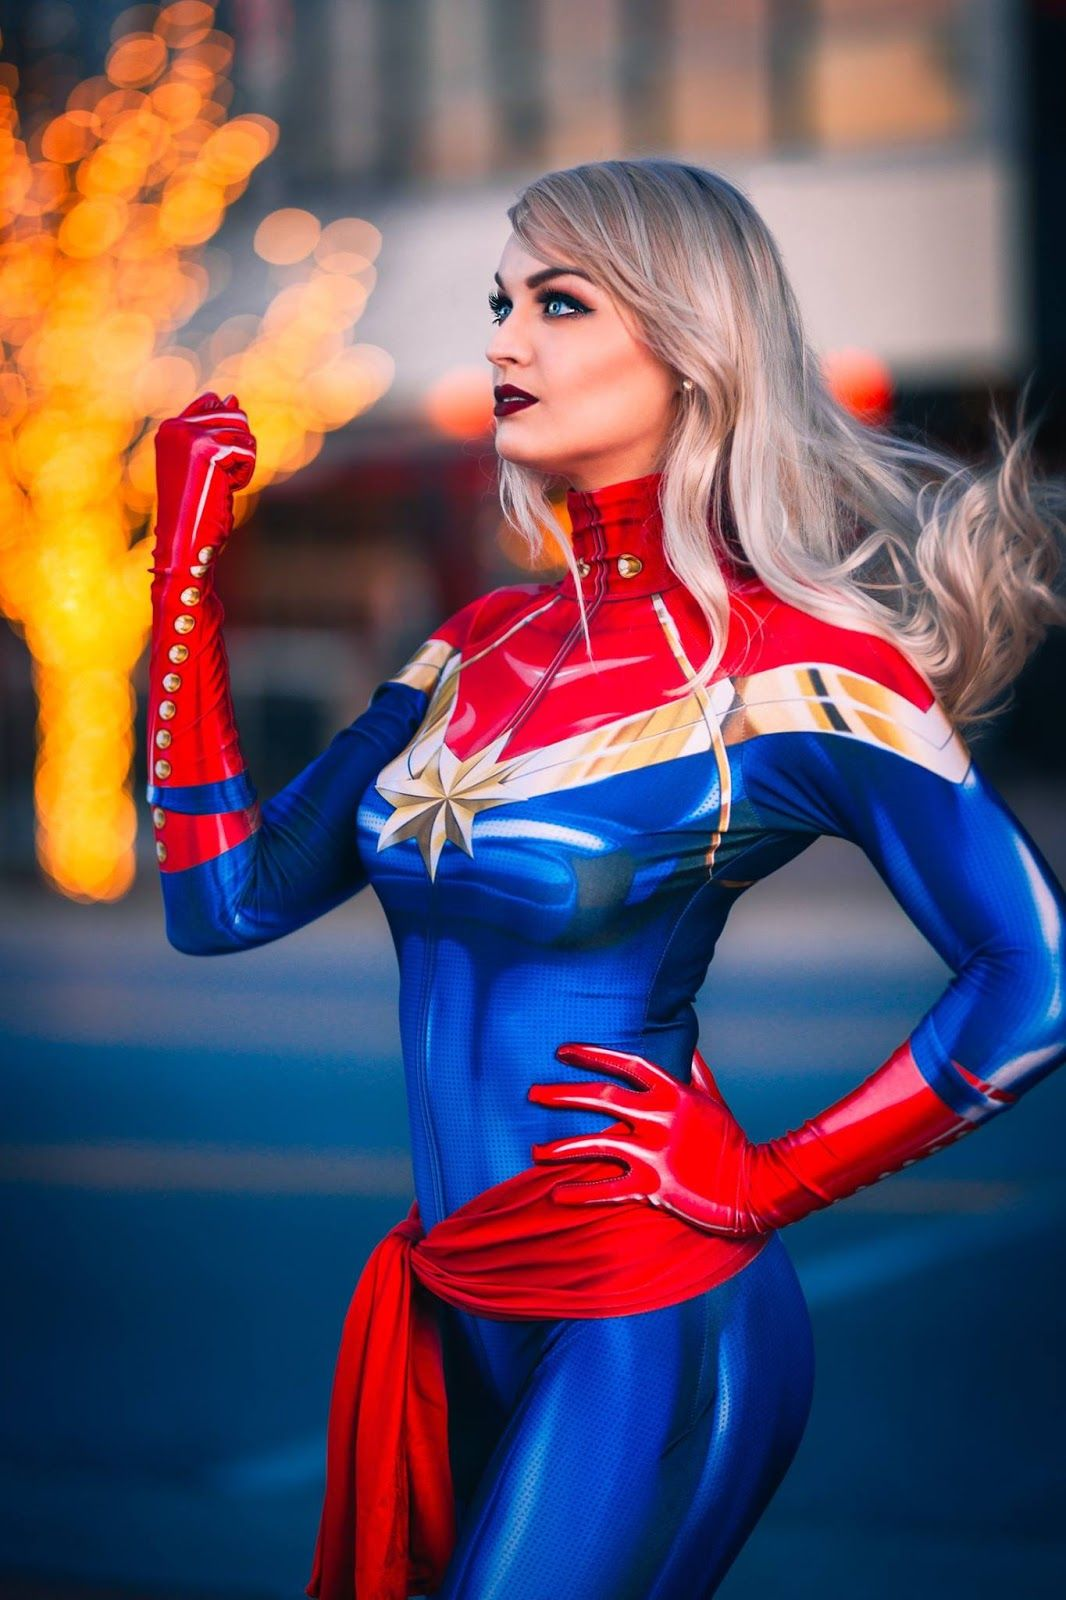 Pin On Marvel Blue and red long sleeve padded jumpsuit, belt, and pull on face mask with mesh eyes and ponytail opening on top. pin on marvel